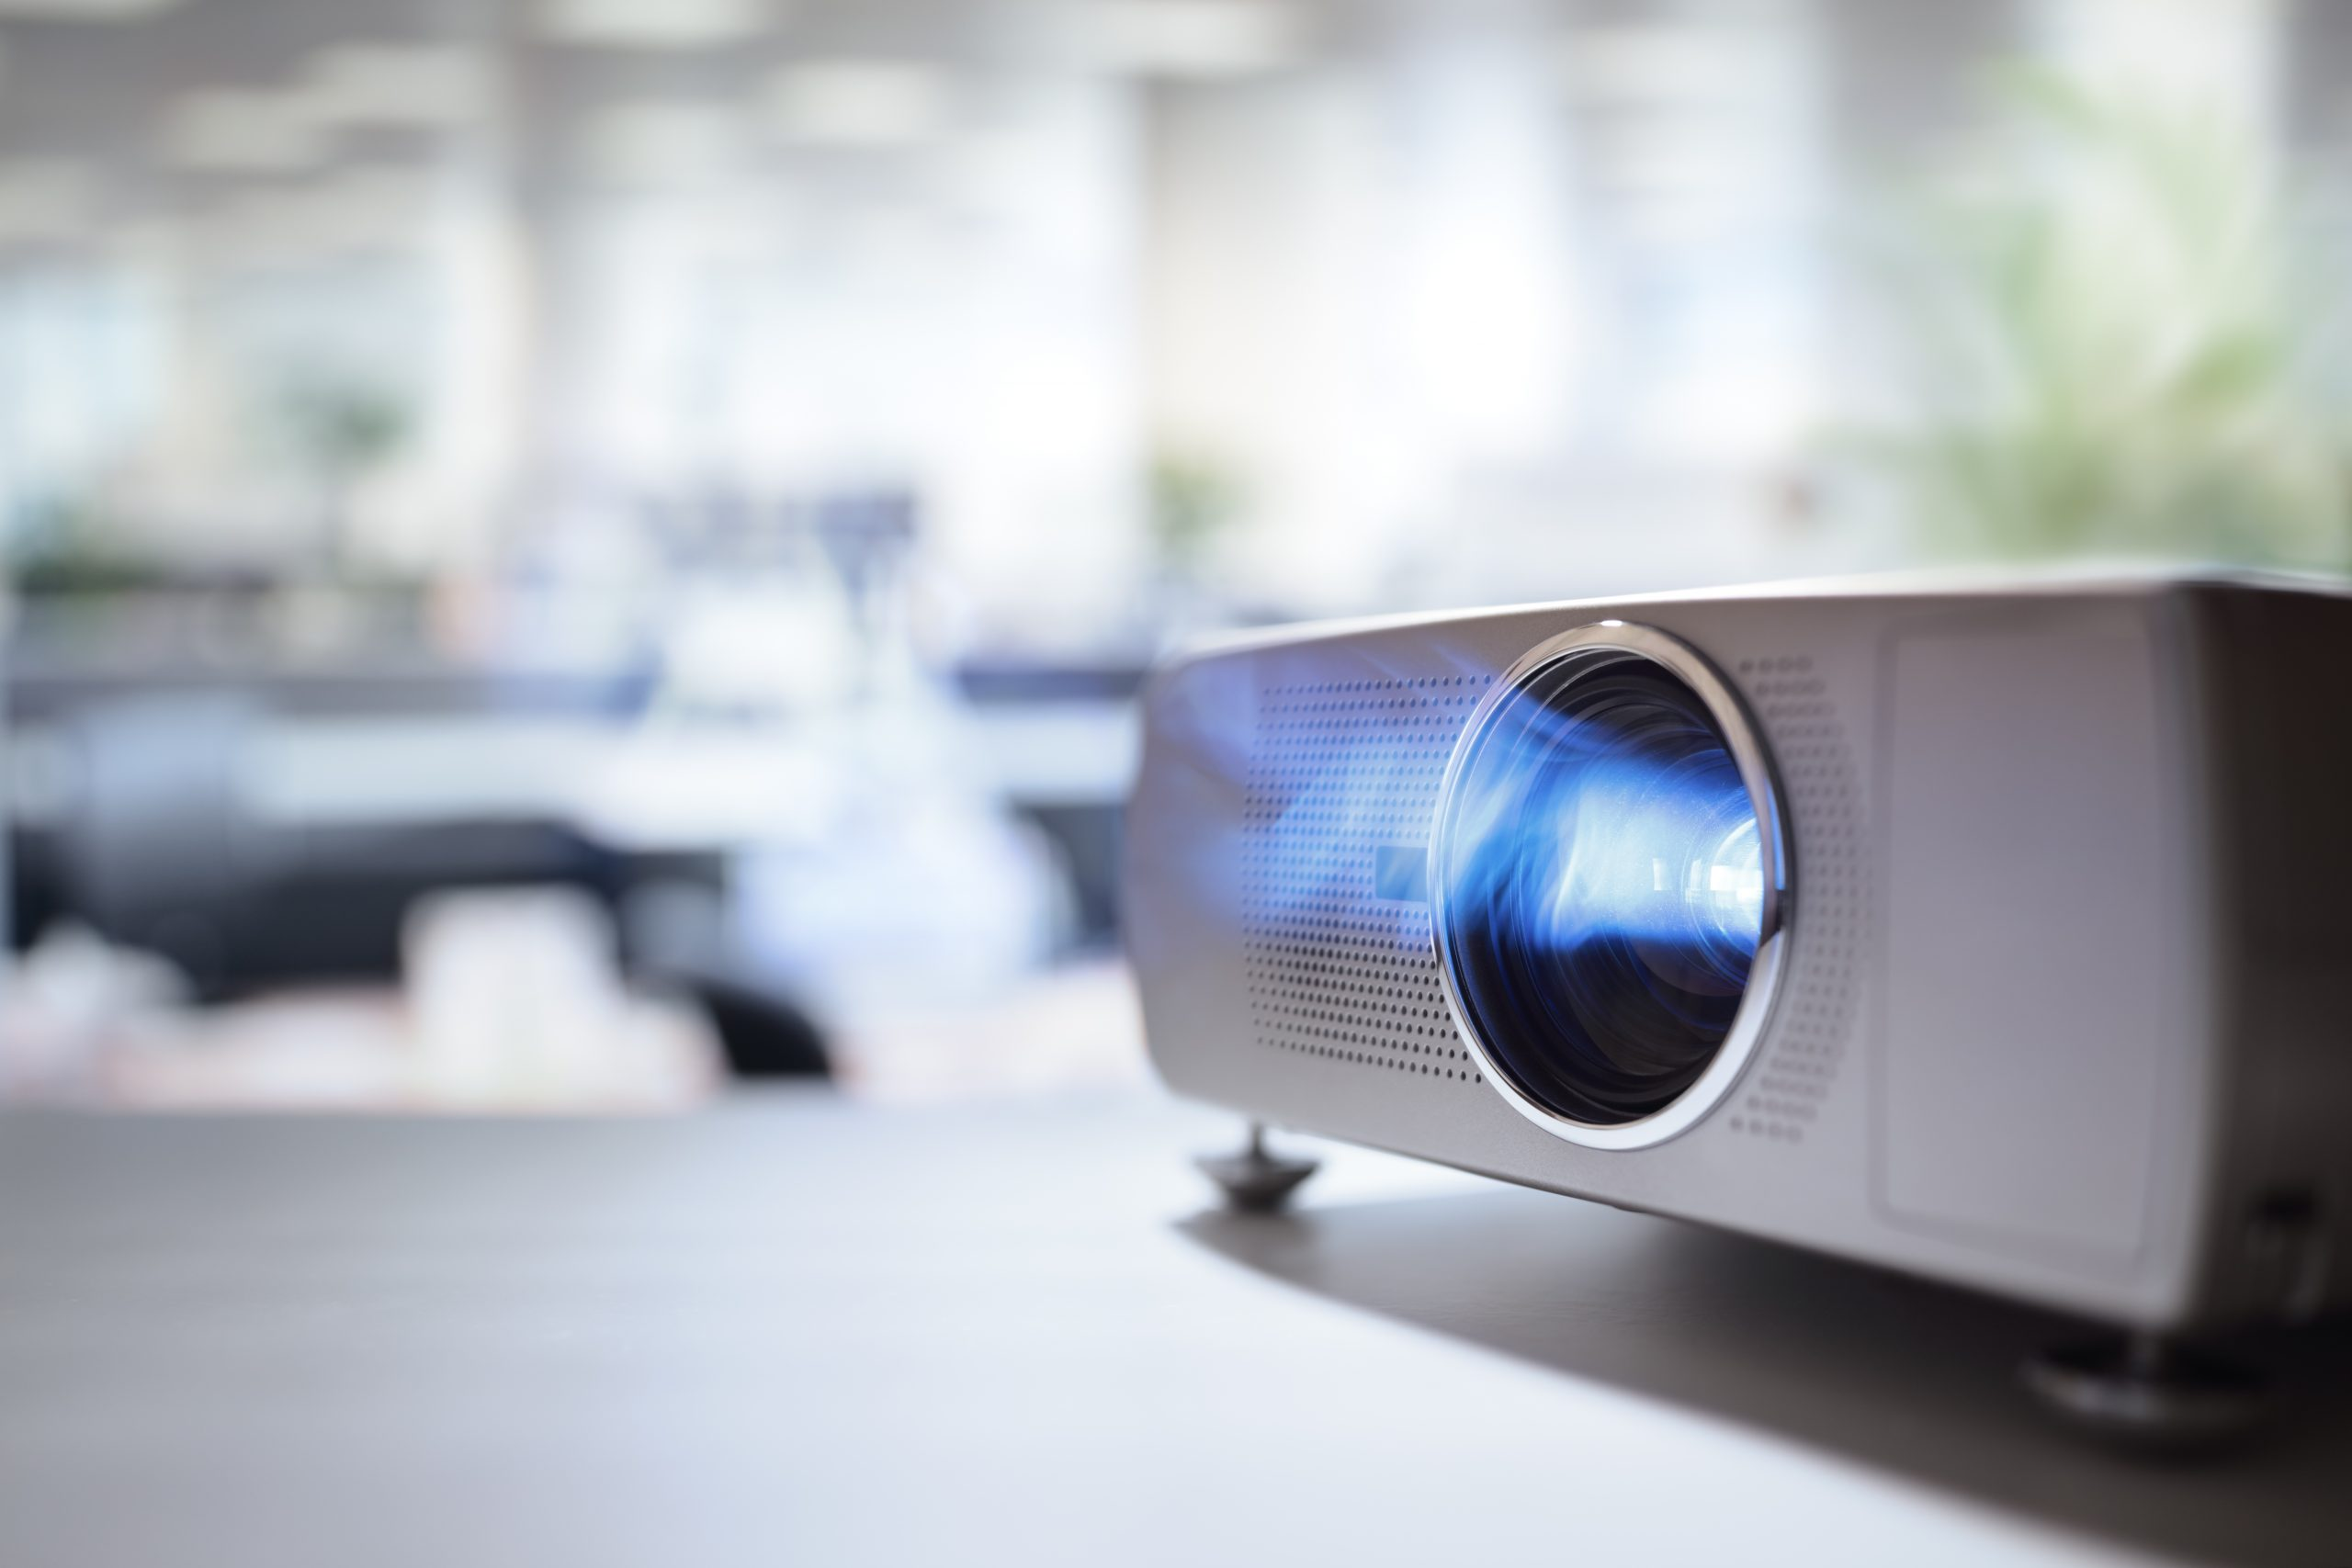 Lcd,Video,Projector,At,Business,Conference,Or,Lecture,In,Office